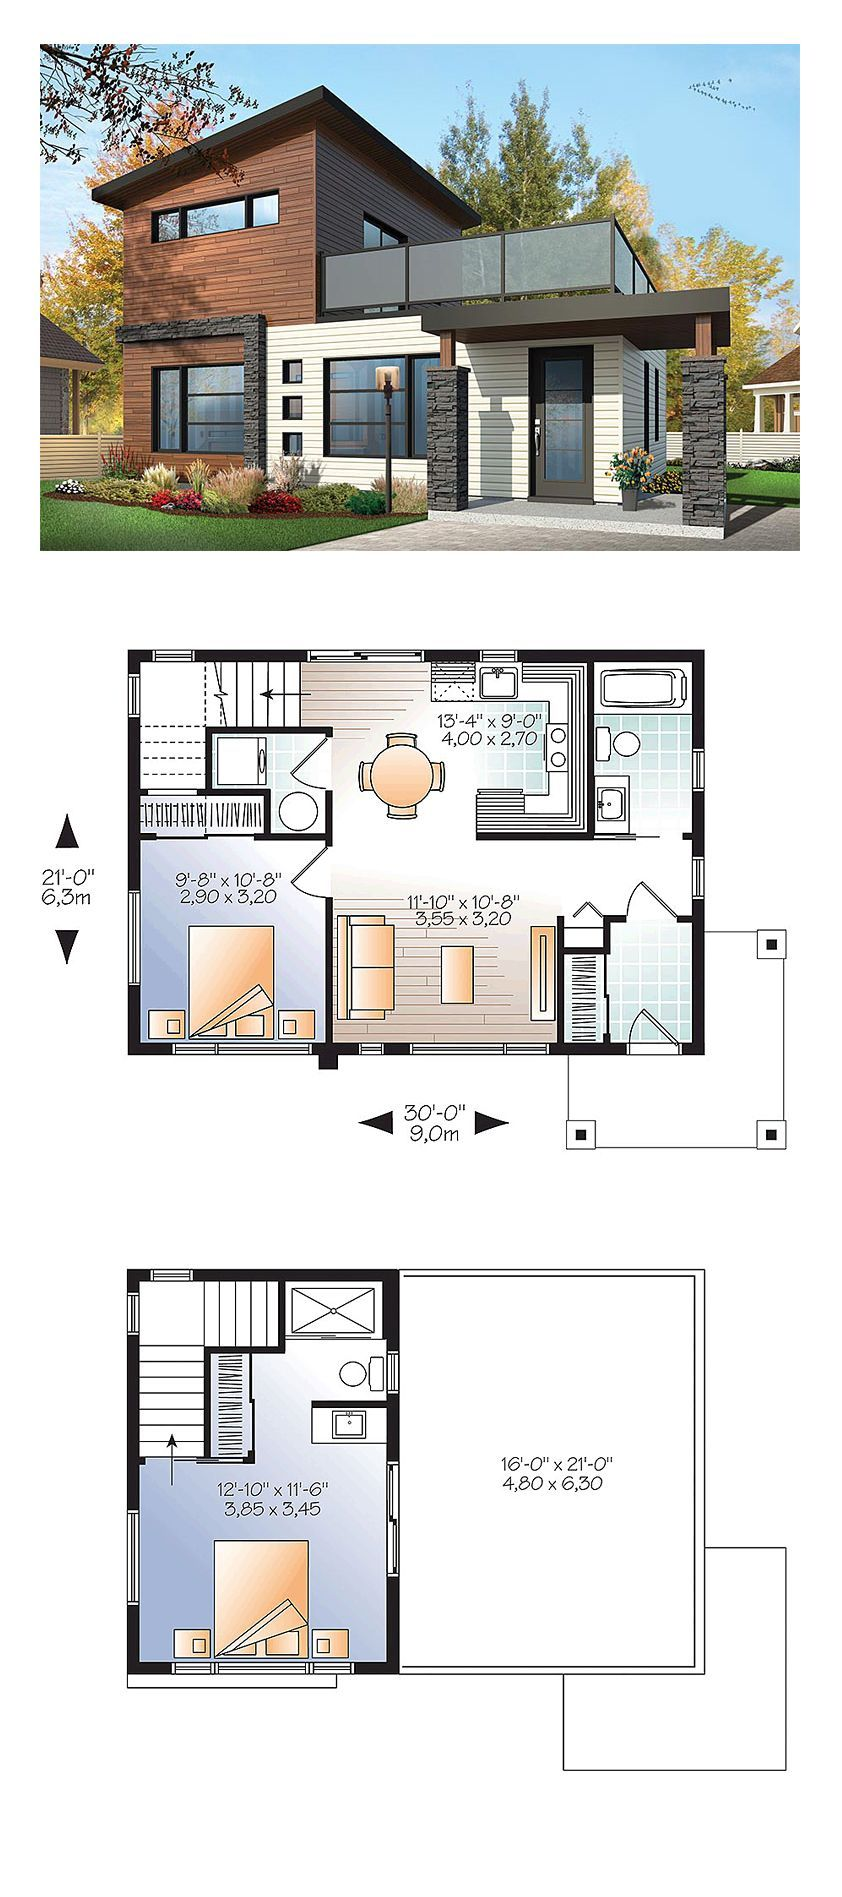 modern house plan 76461 total living area 924 sq ft 2 bedrooms rh pinterest com